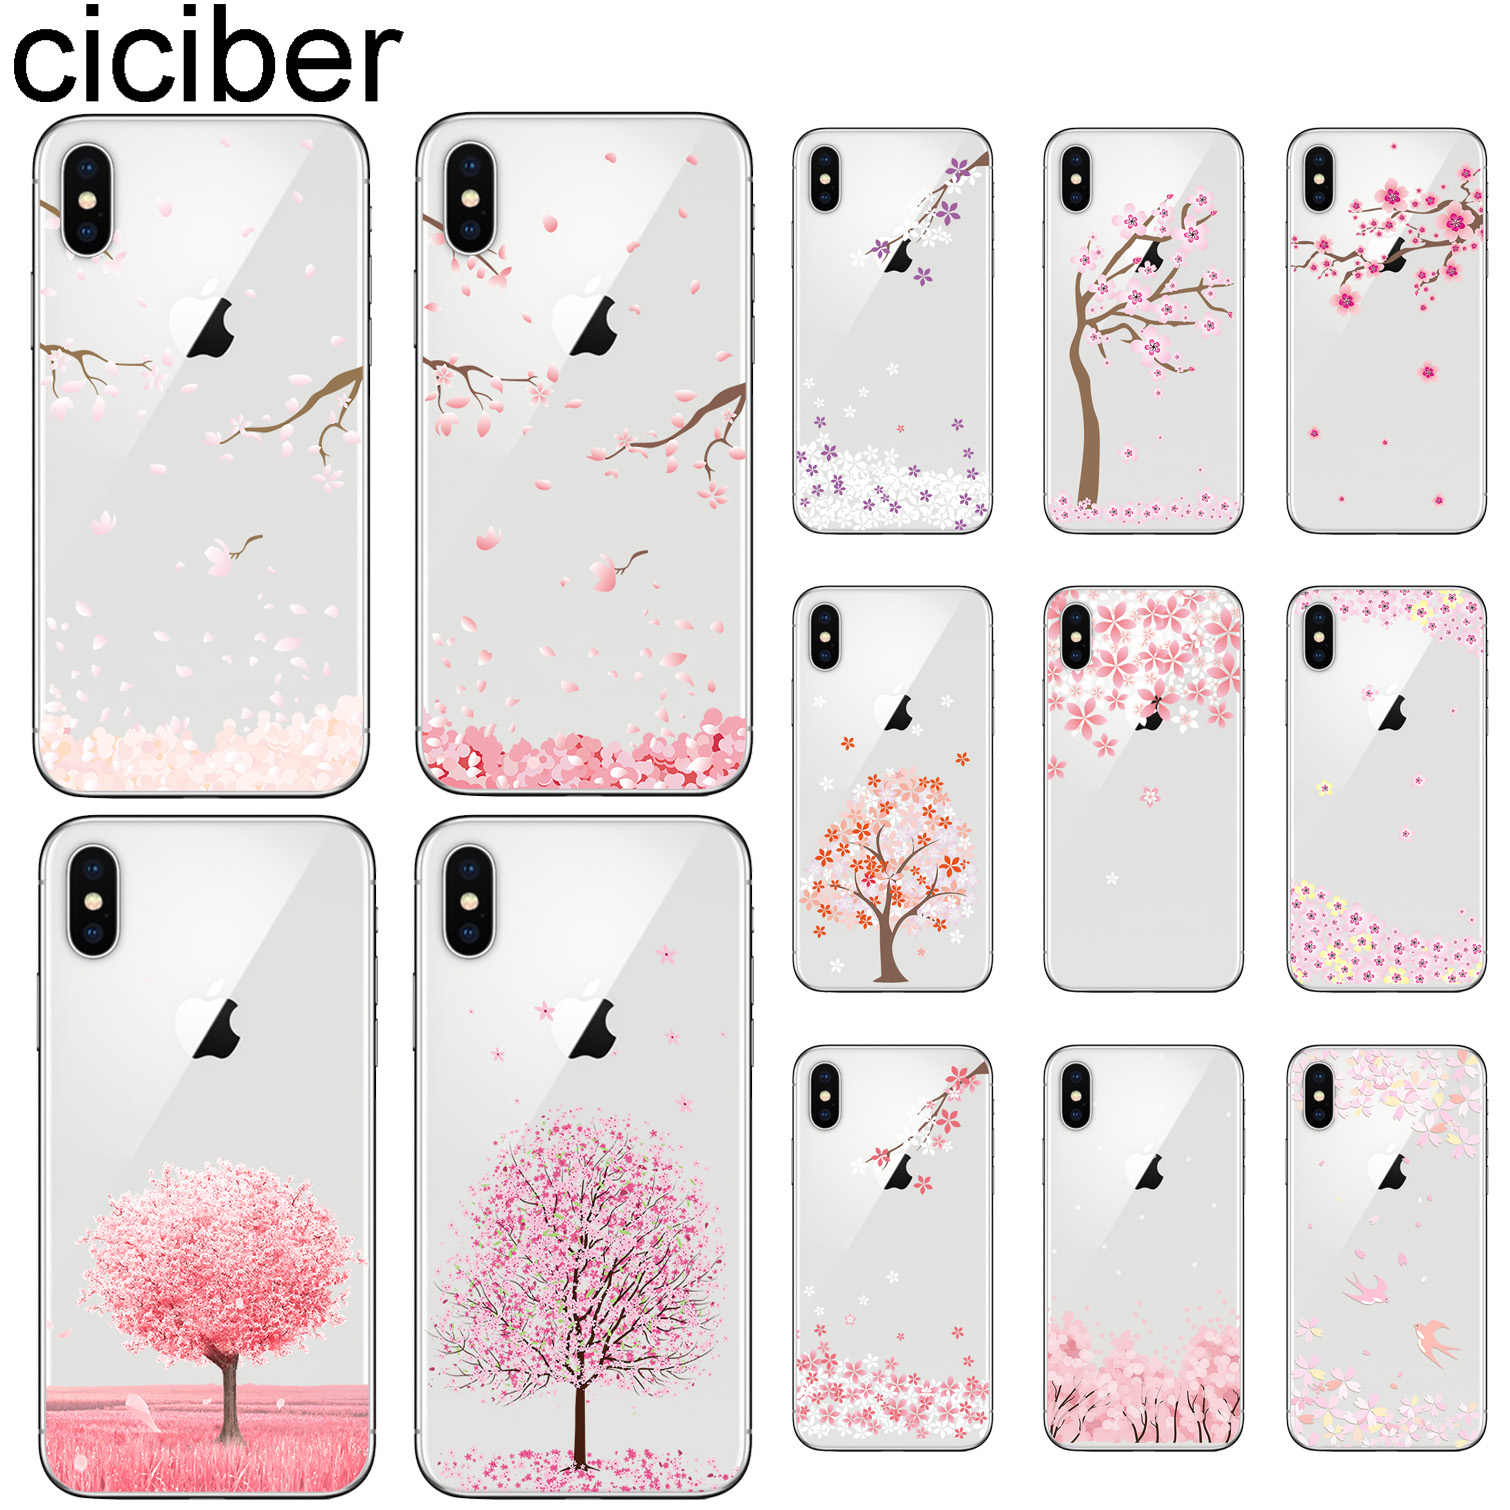 ciciber Cherry Blossom Tree Phone Cases For iphone 11 Pro XR XS MAX X Soft TPU Cover For Iphone 7 8 6 6S Plus 5S SE Coque Funda